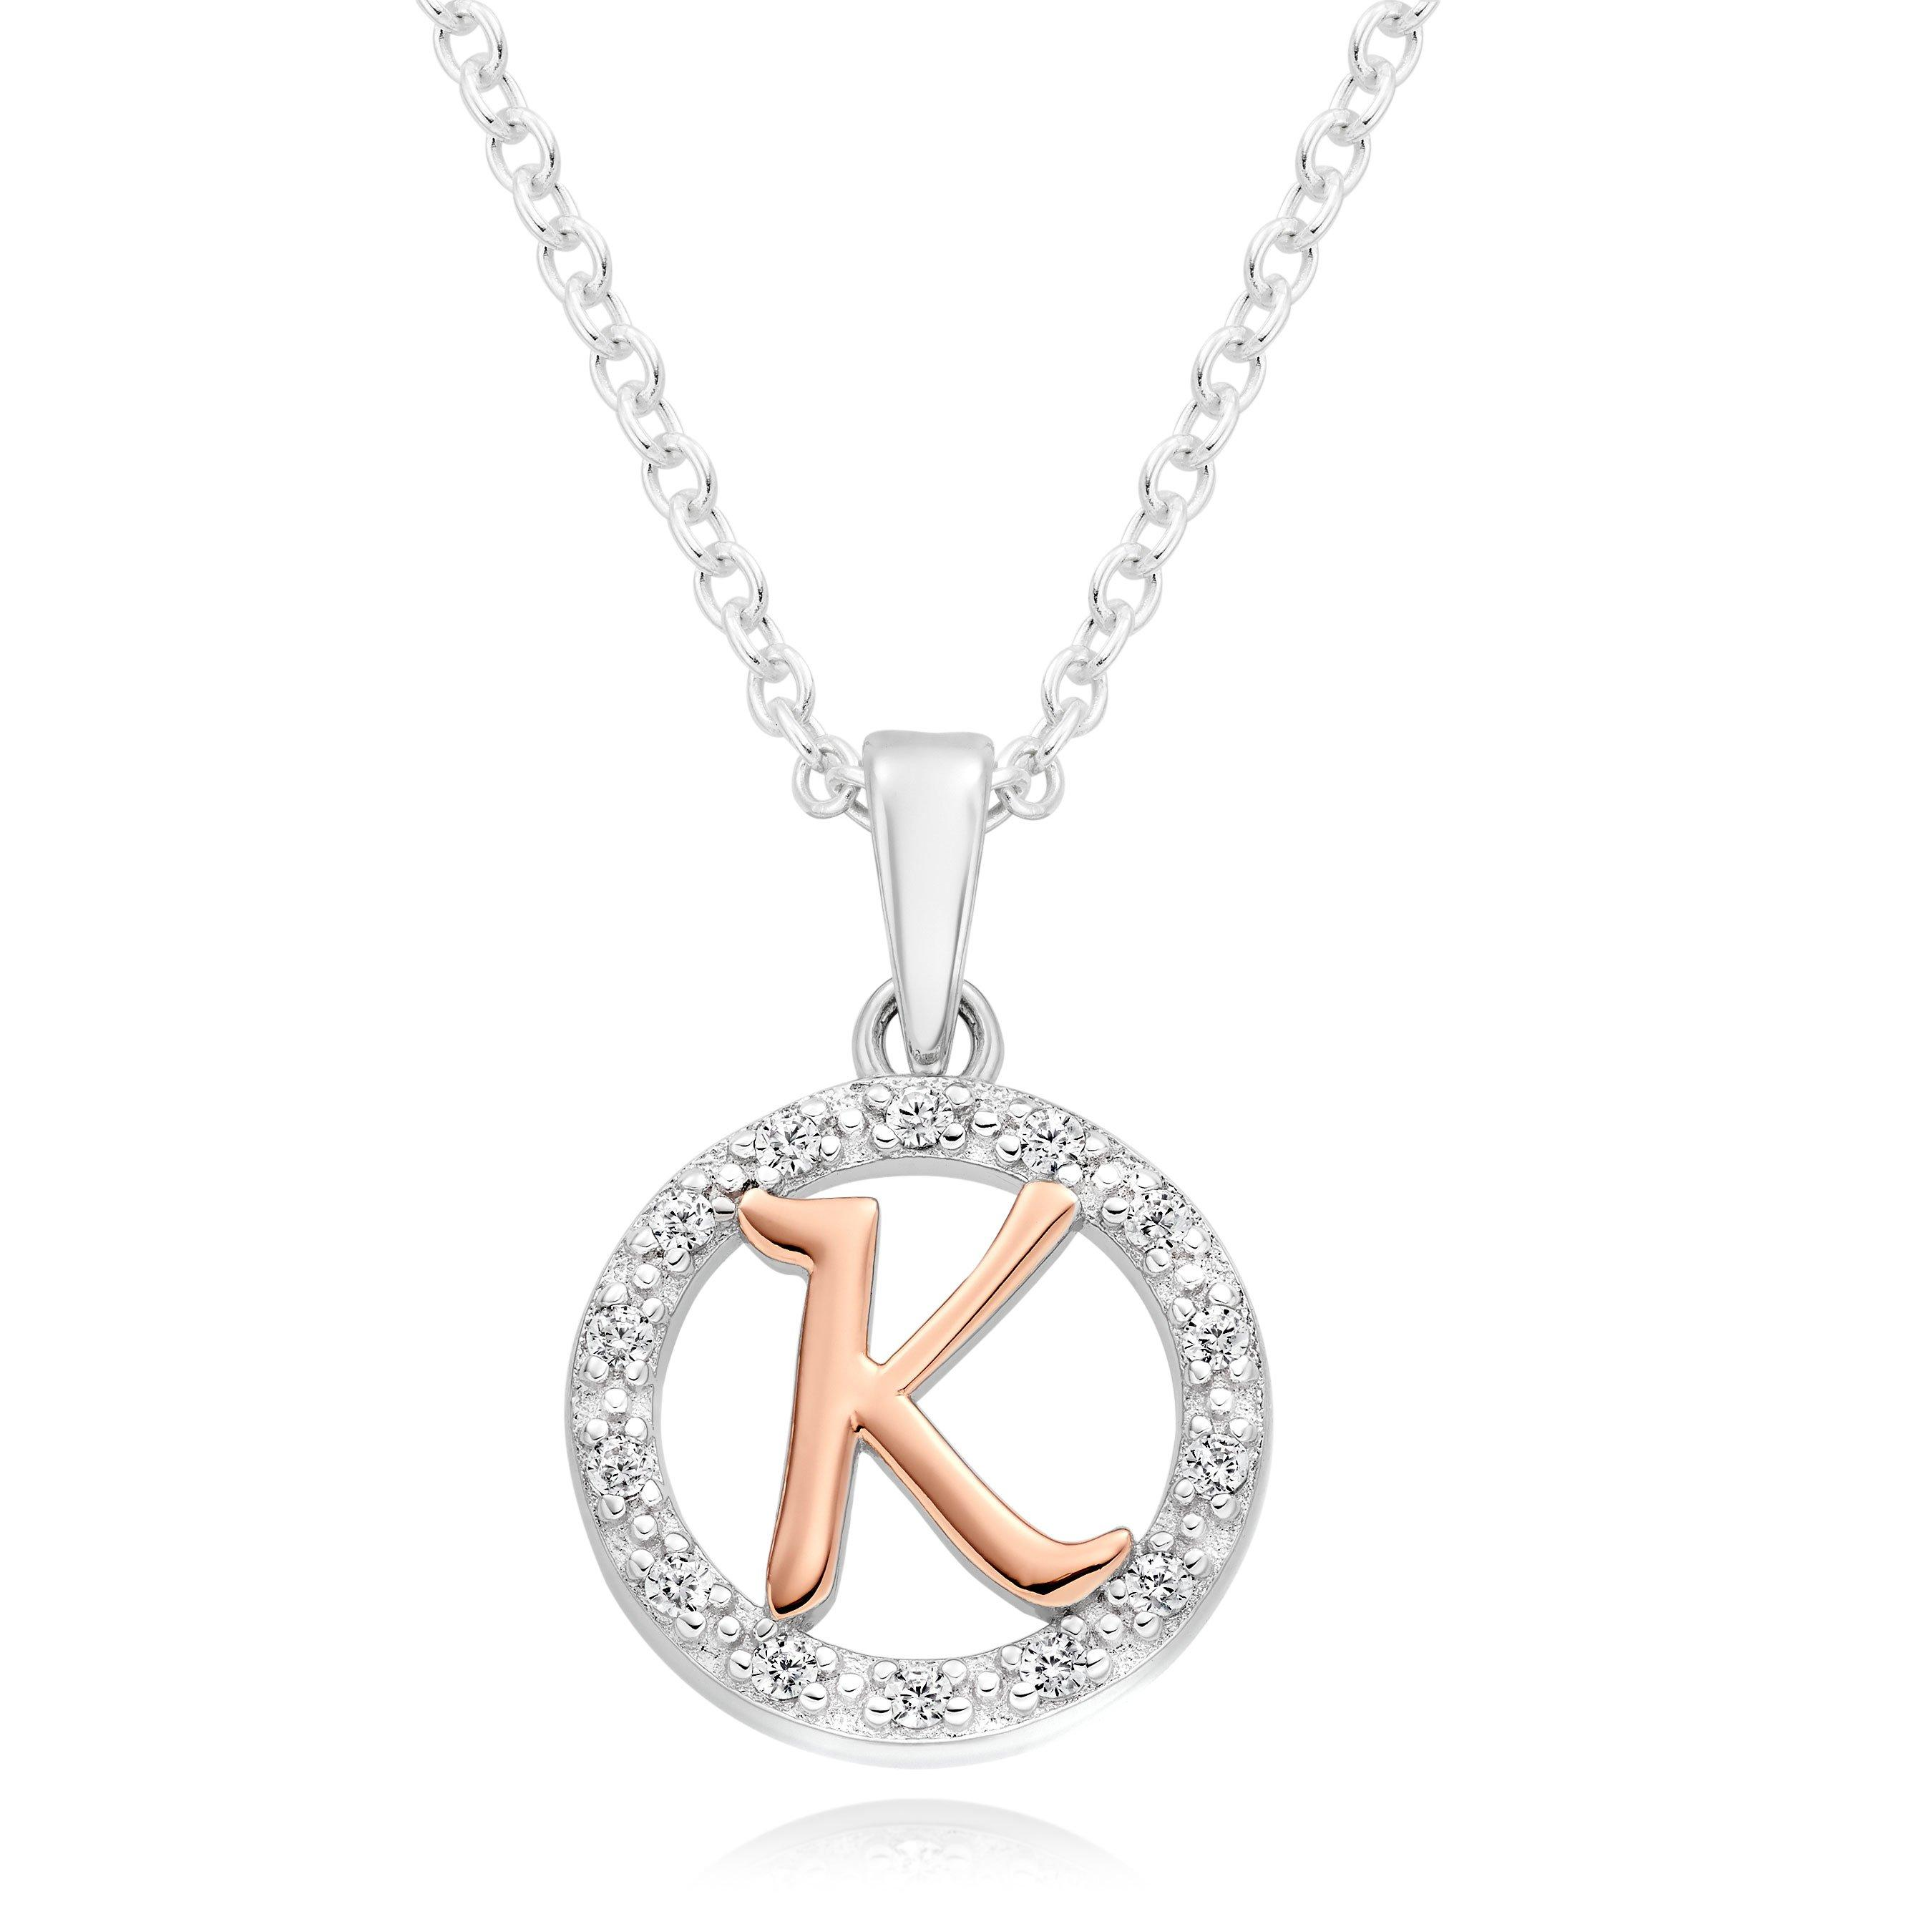 Silver Rose Gold Plated Cubic Zirconia Letter K Pendant